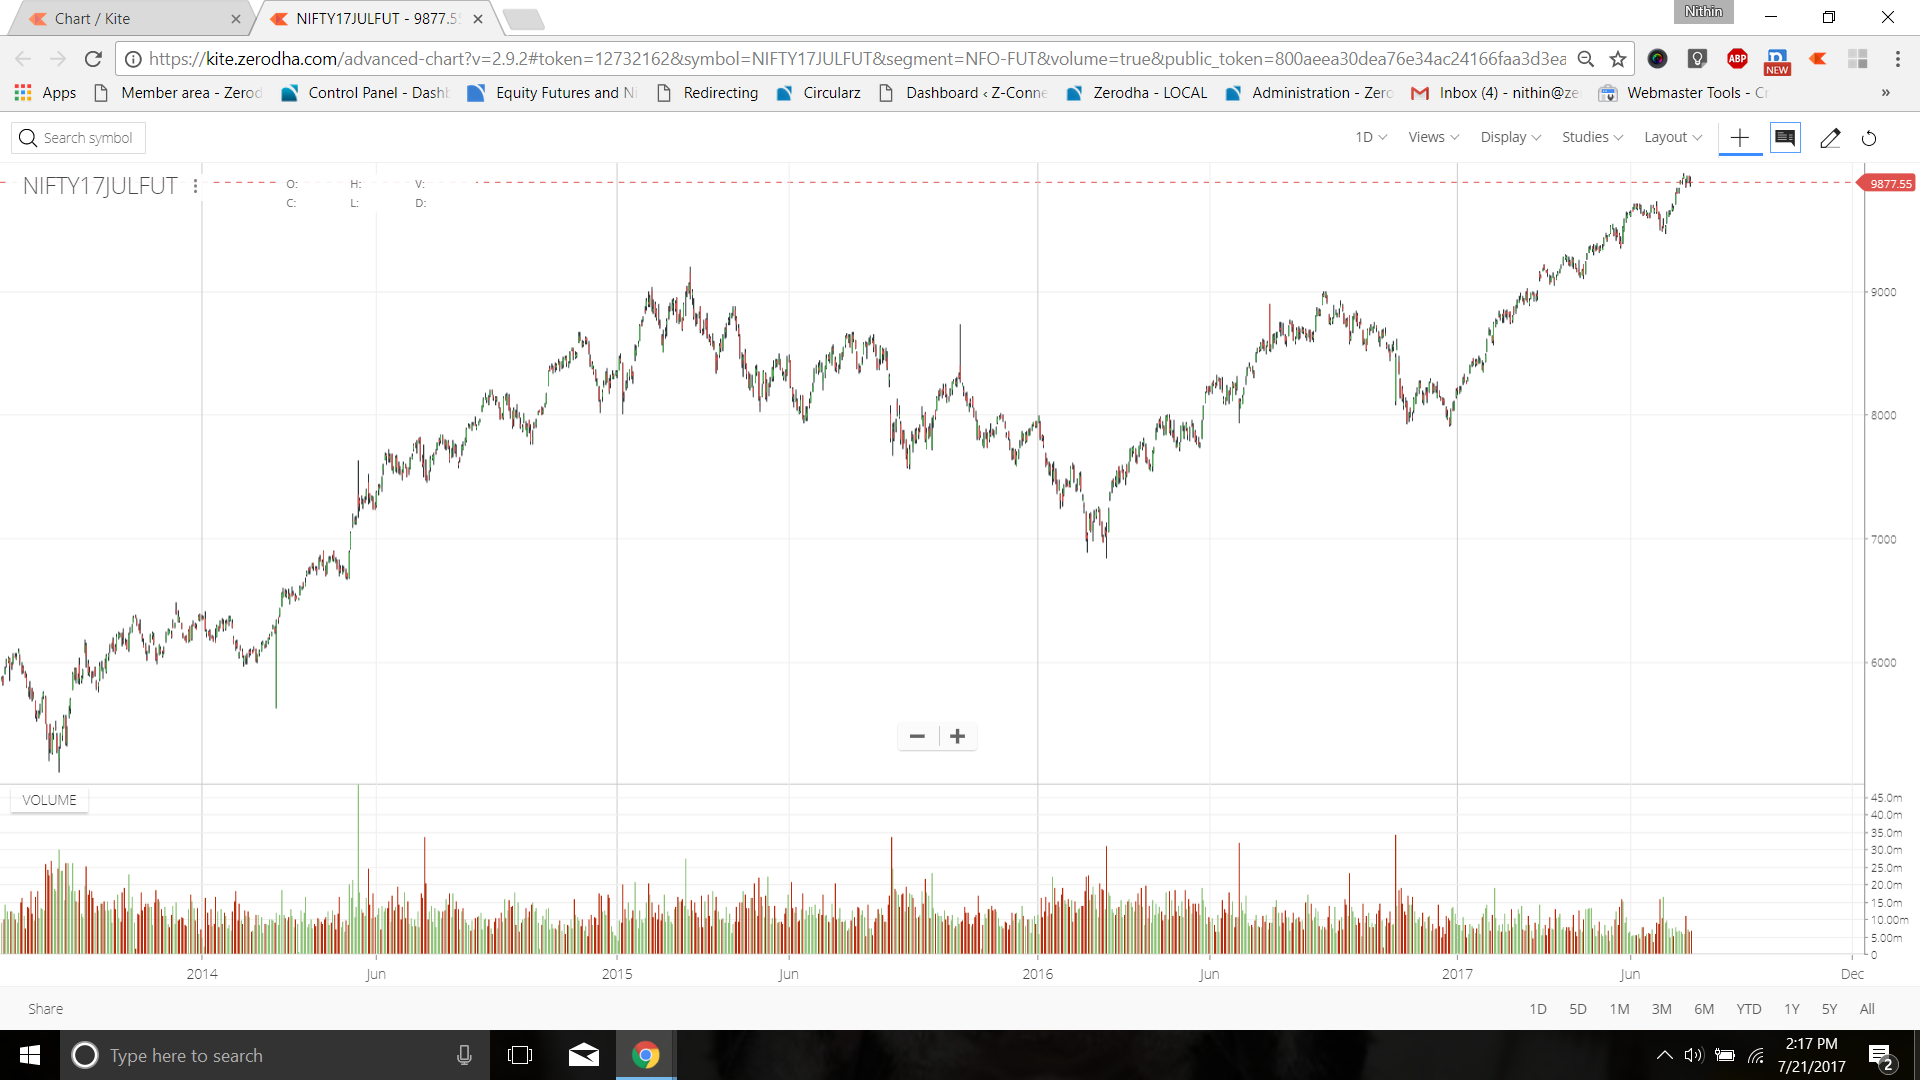 What are continuous futures charts that I see on Kite? - Zerodha